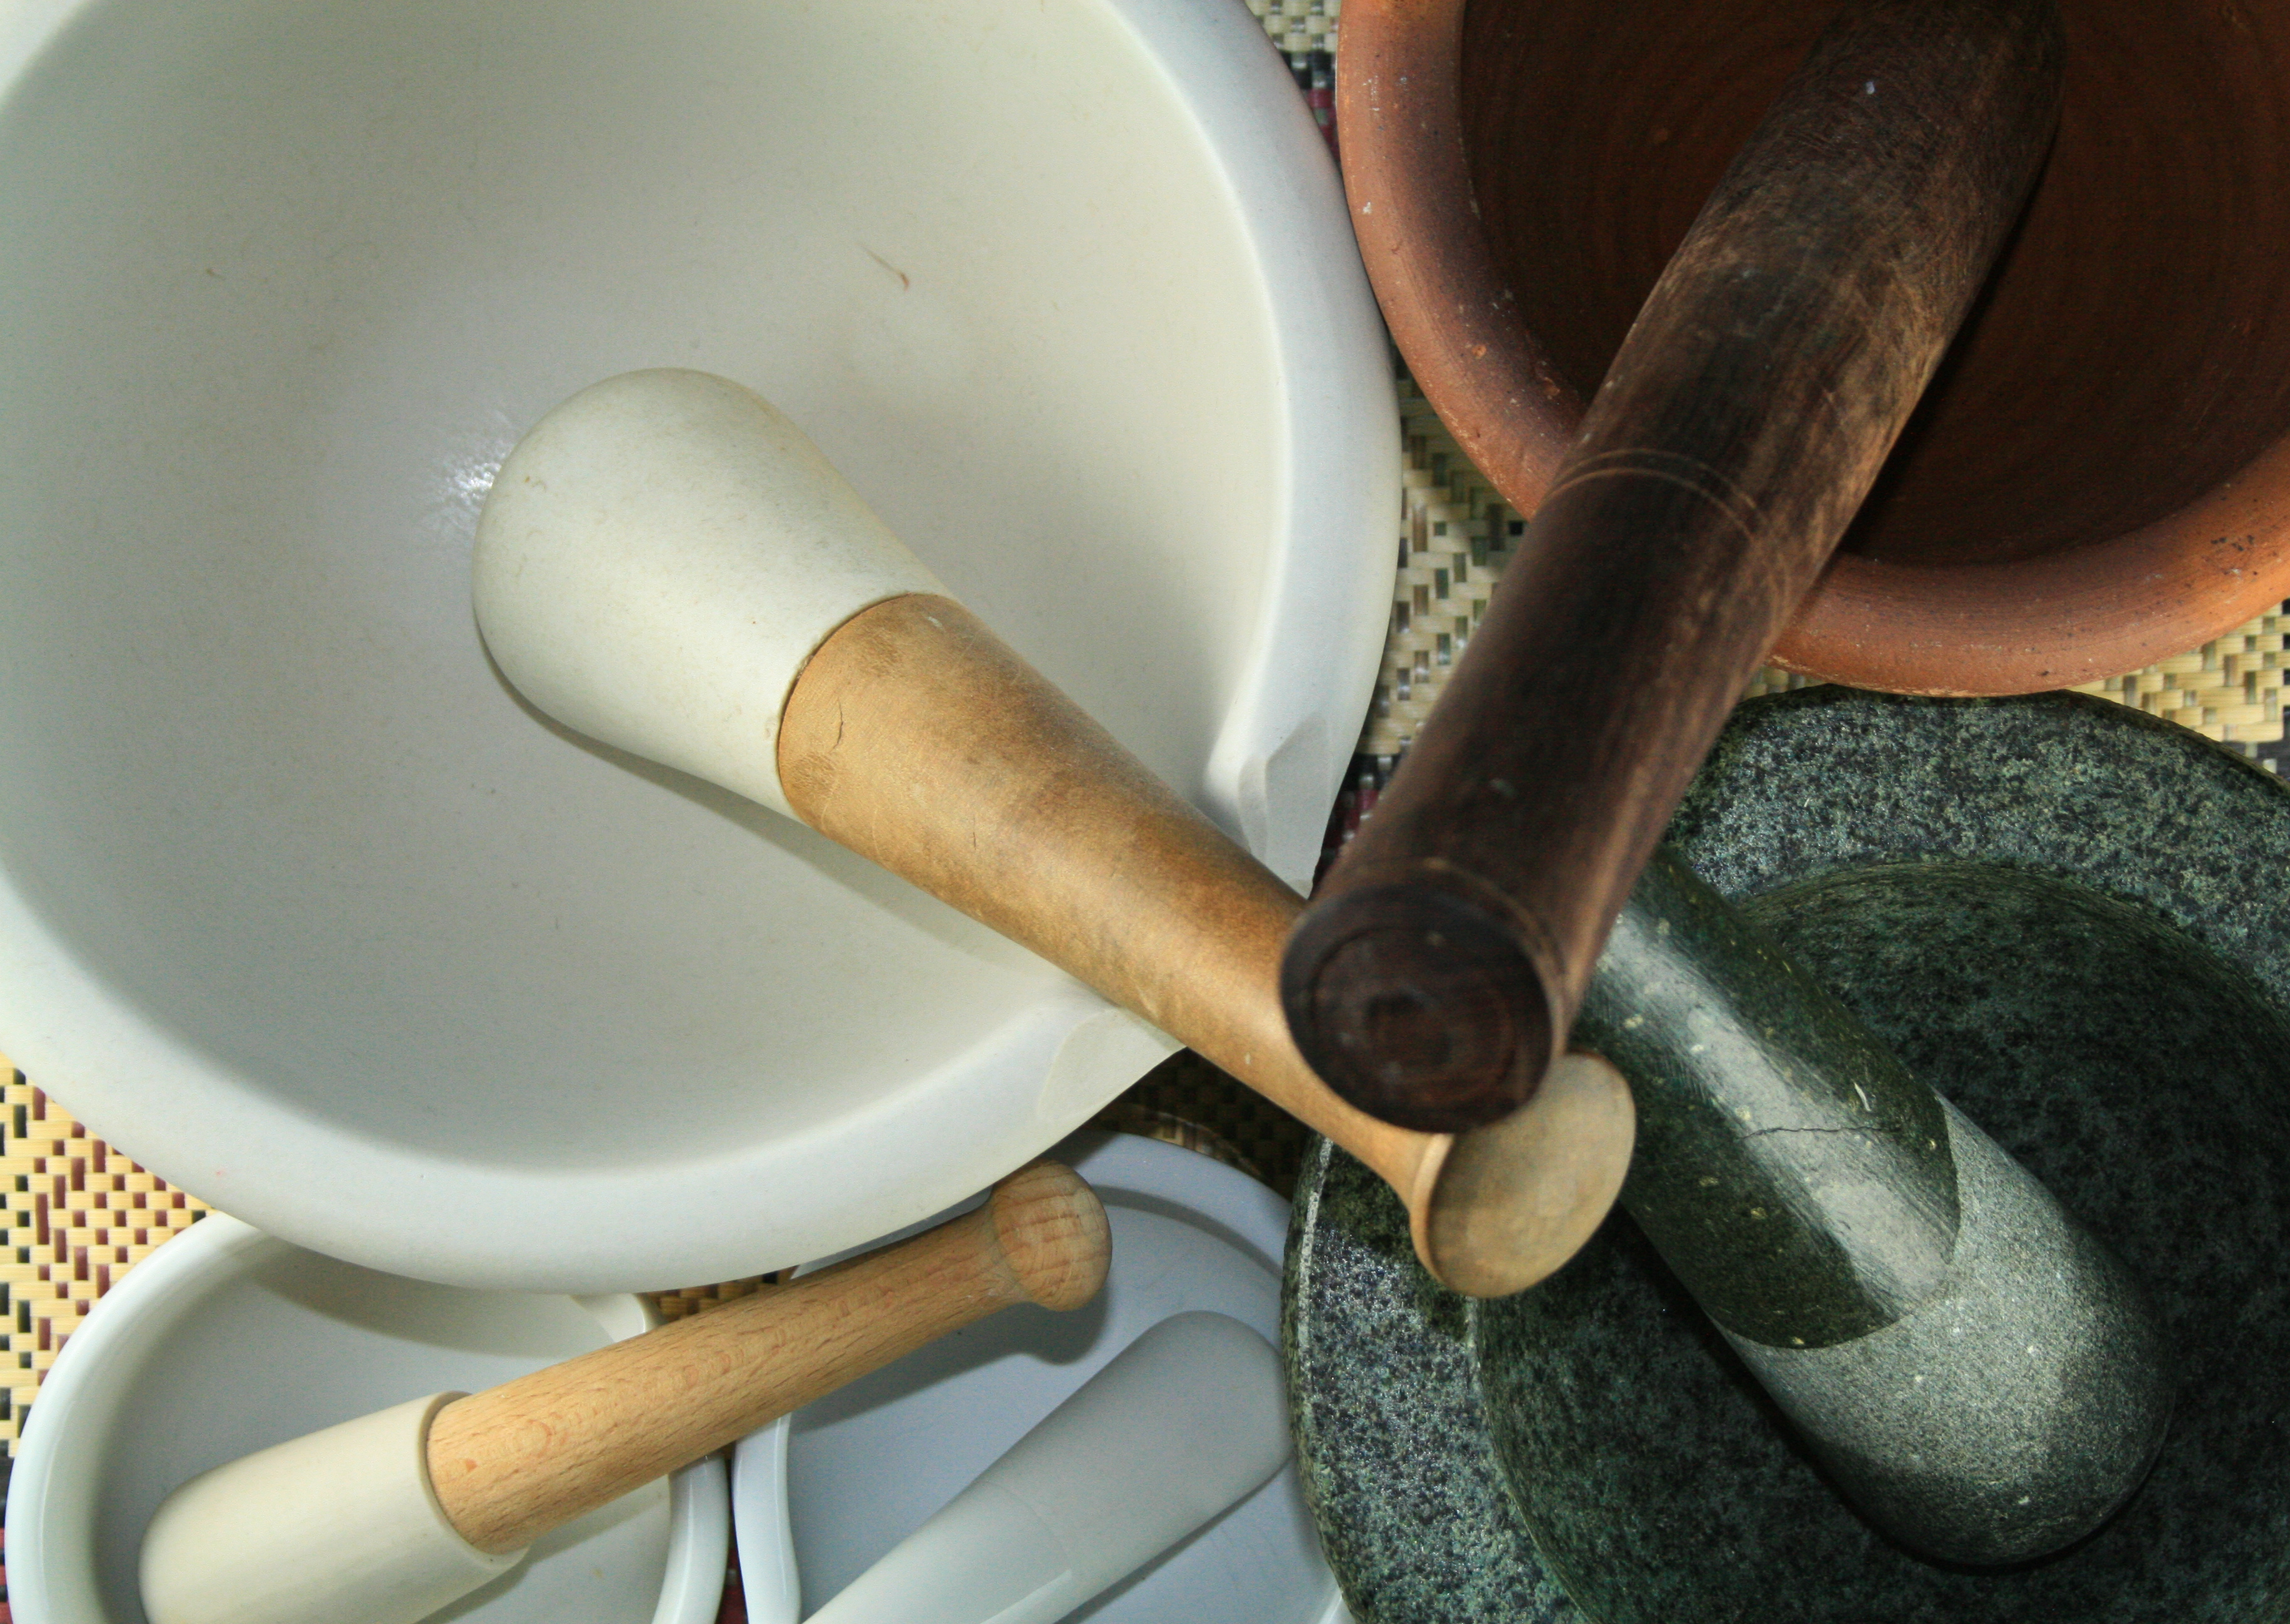 Our modest collection of mortars and pestles